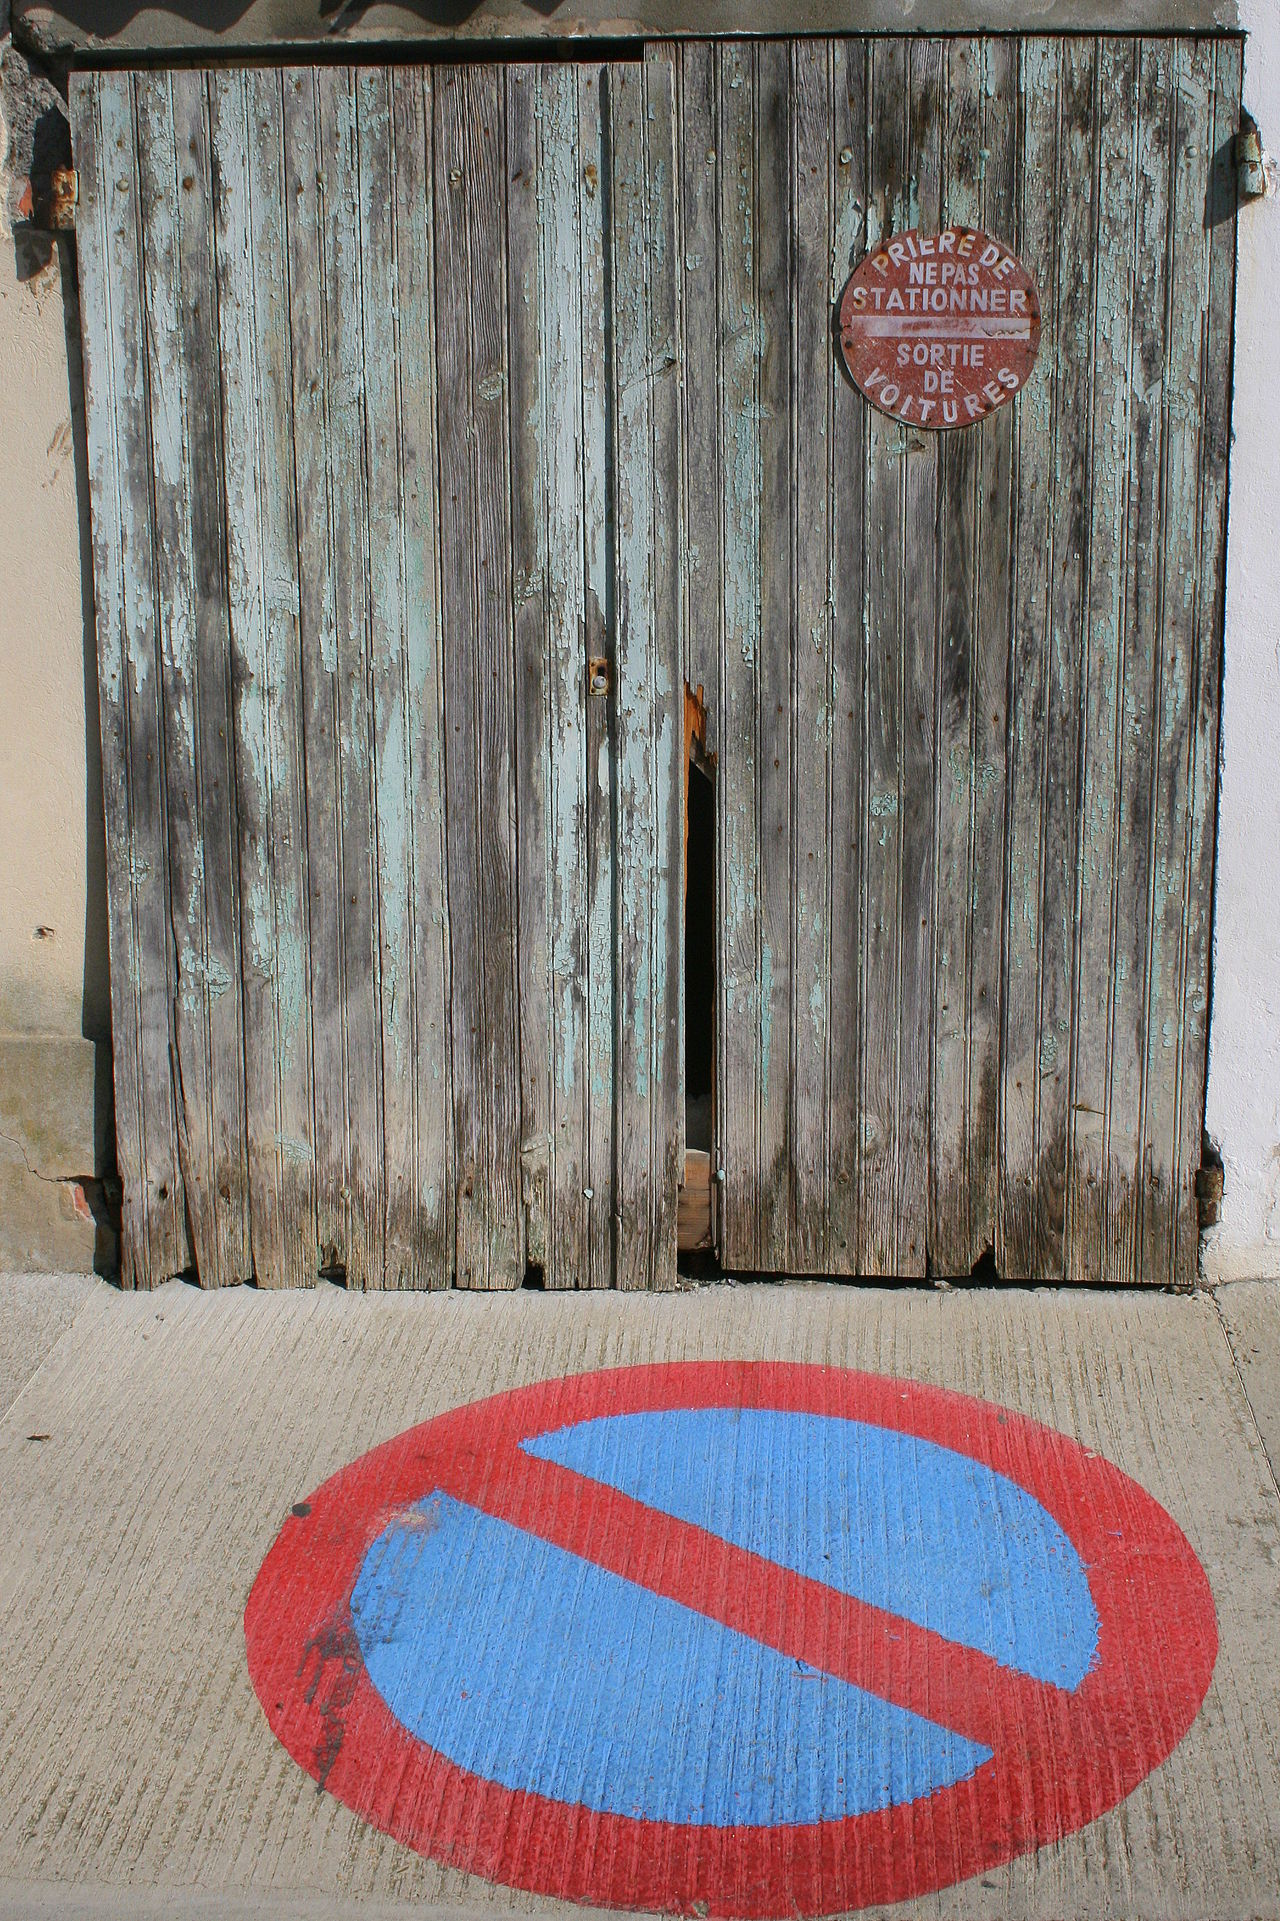 Architecture Ban Sign Built Structure Close-up Day Door Forbidden Multi Colored No No People Outdoors Red Road Sign Text